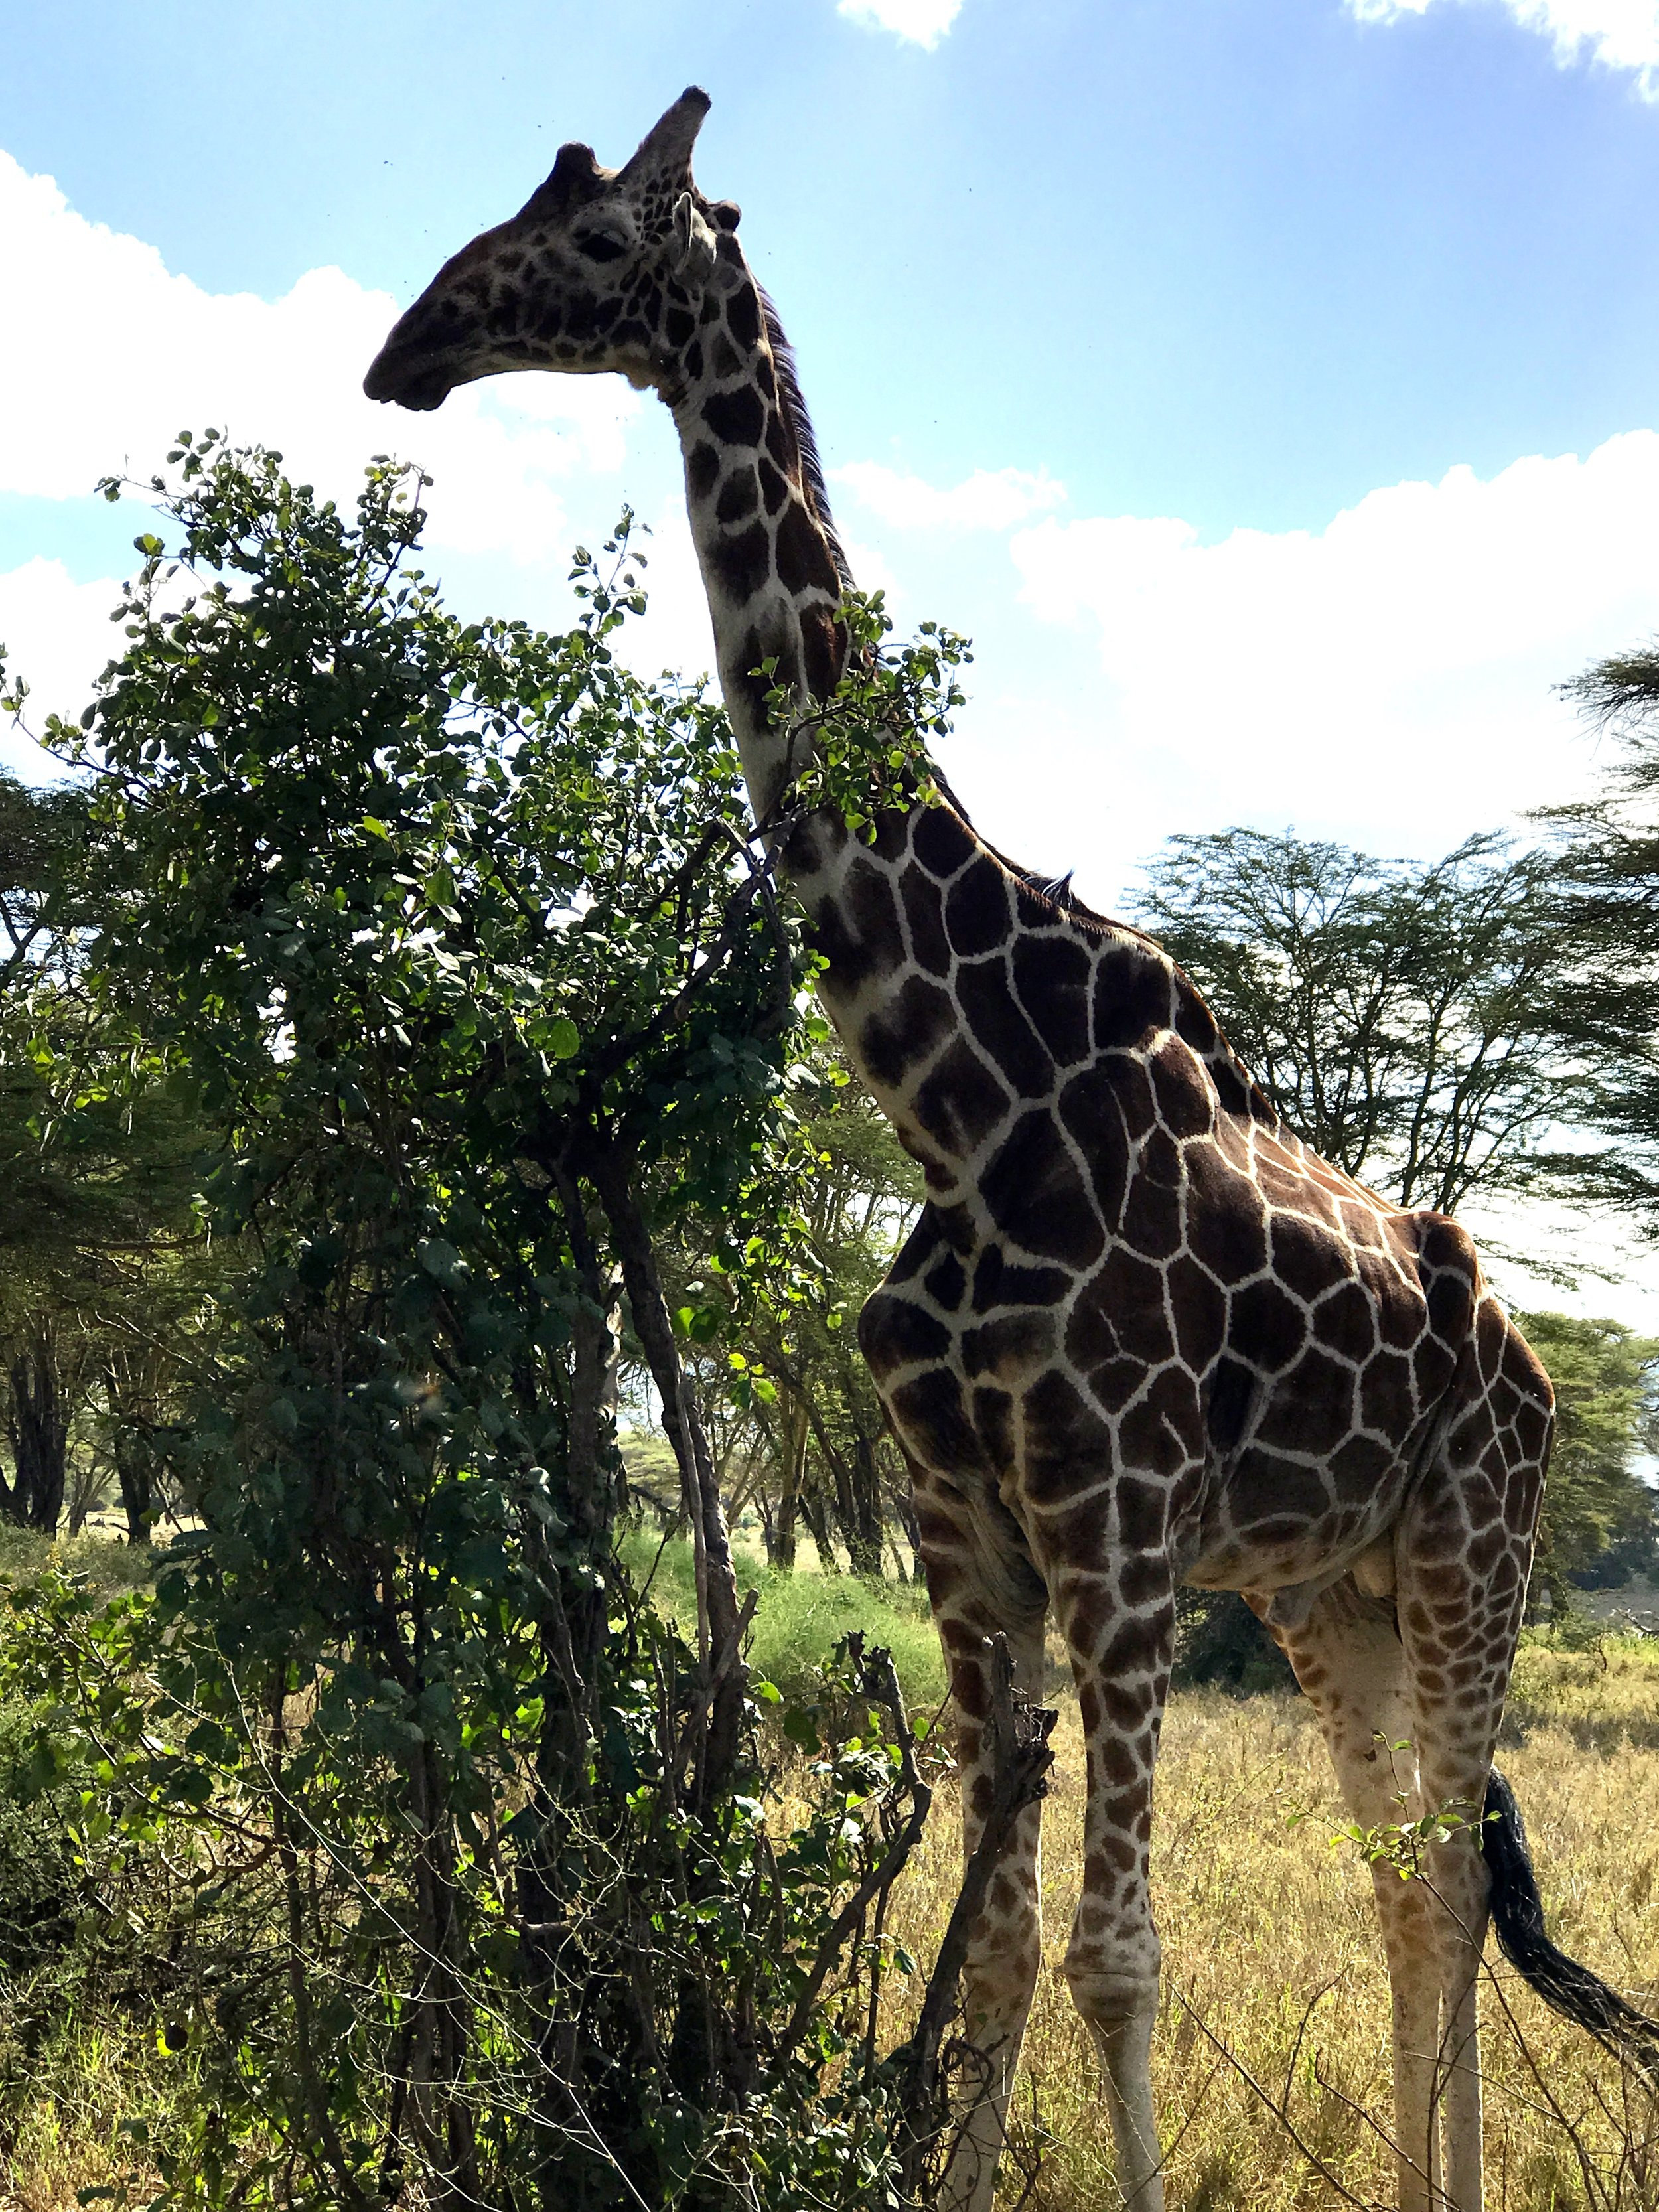 A giraffe on the way to the clinic!